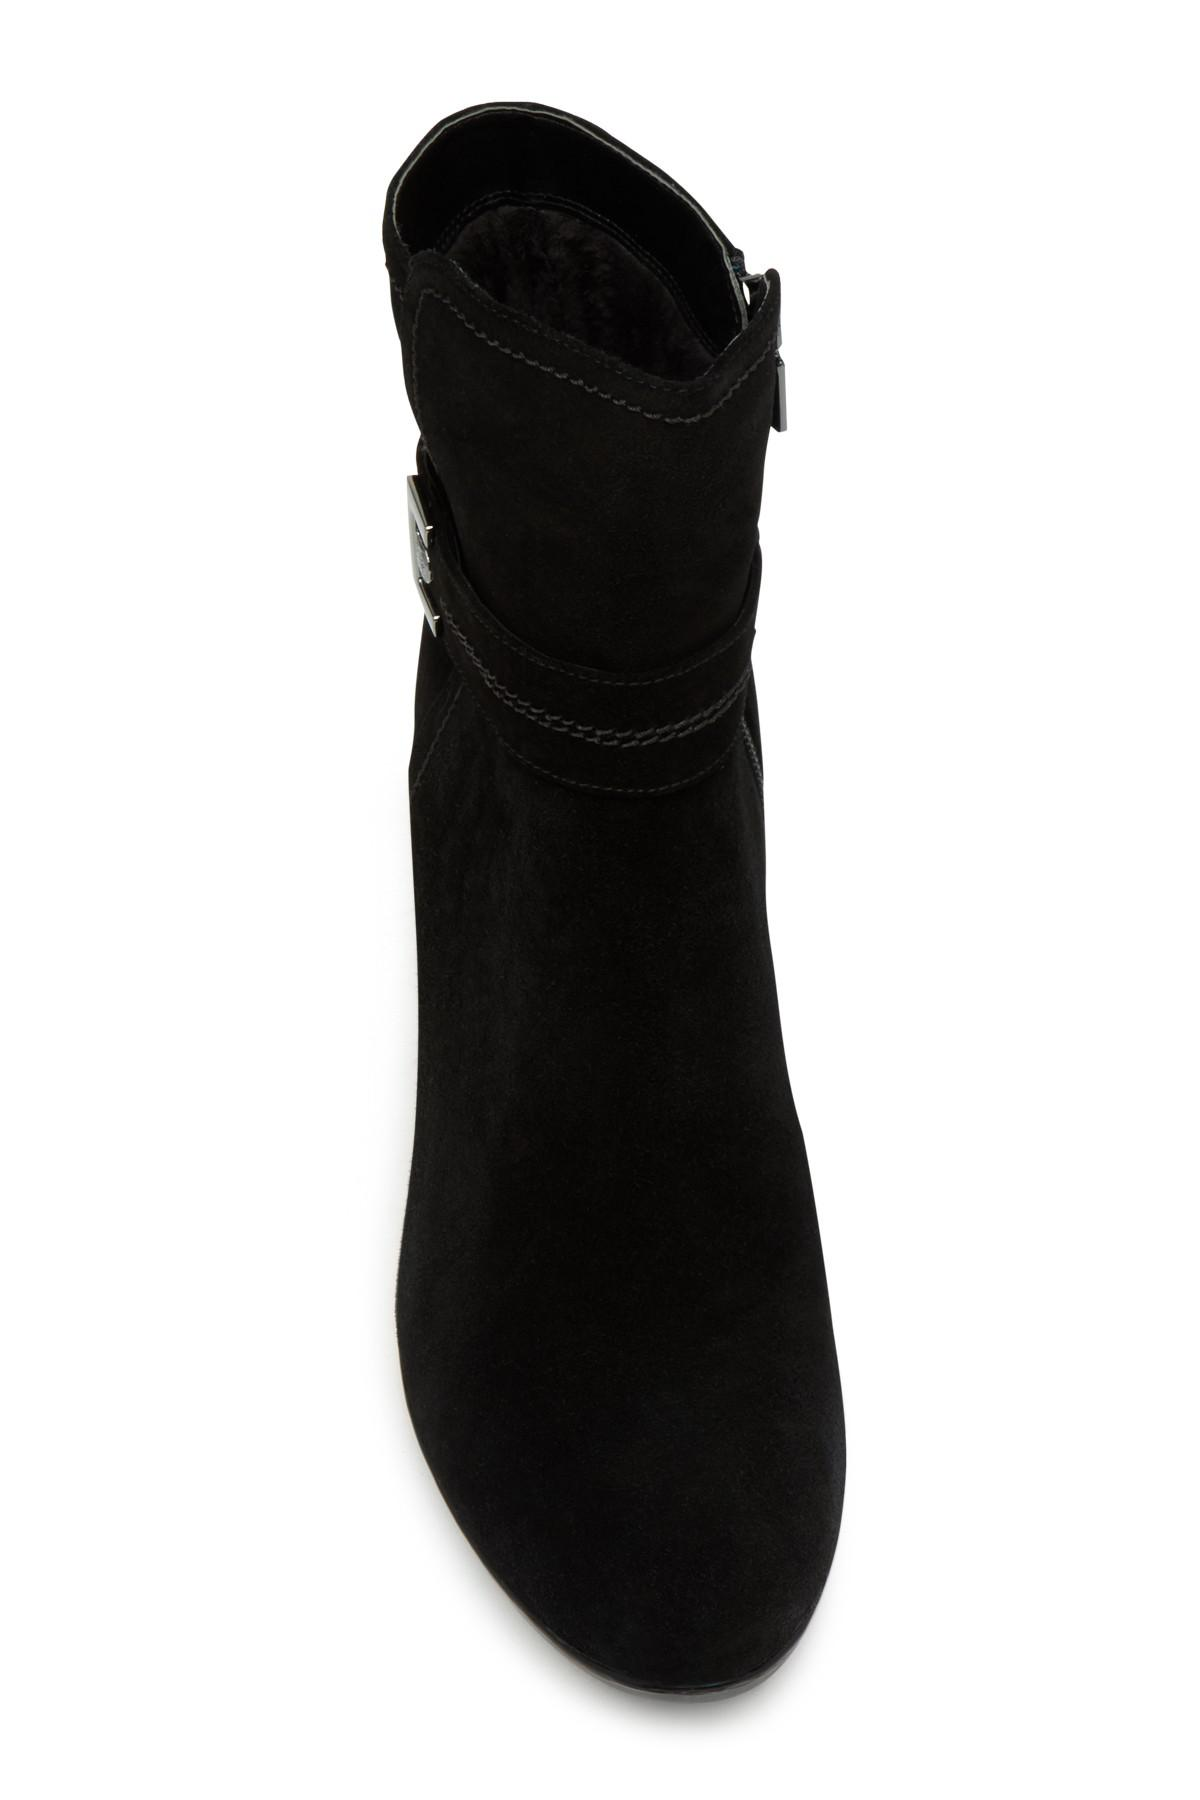 0c4dccd267a7 Lyst - Blondo Lucy Suede Faux Fur Lined Wedge Boot in Black